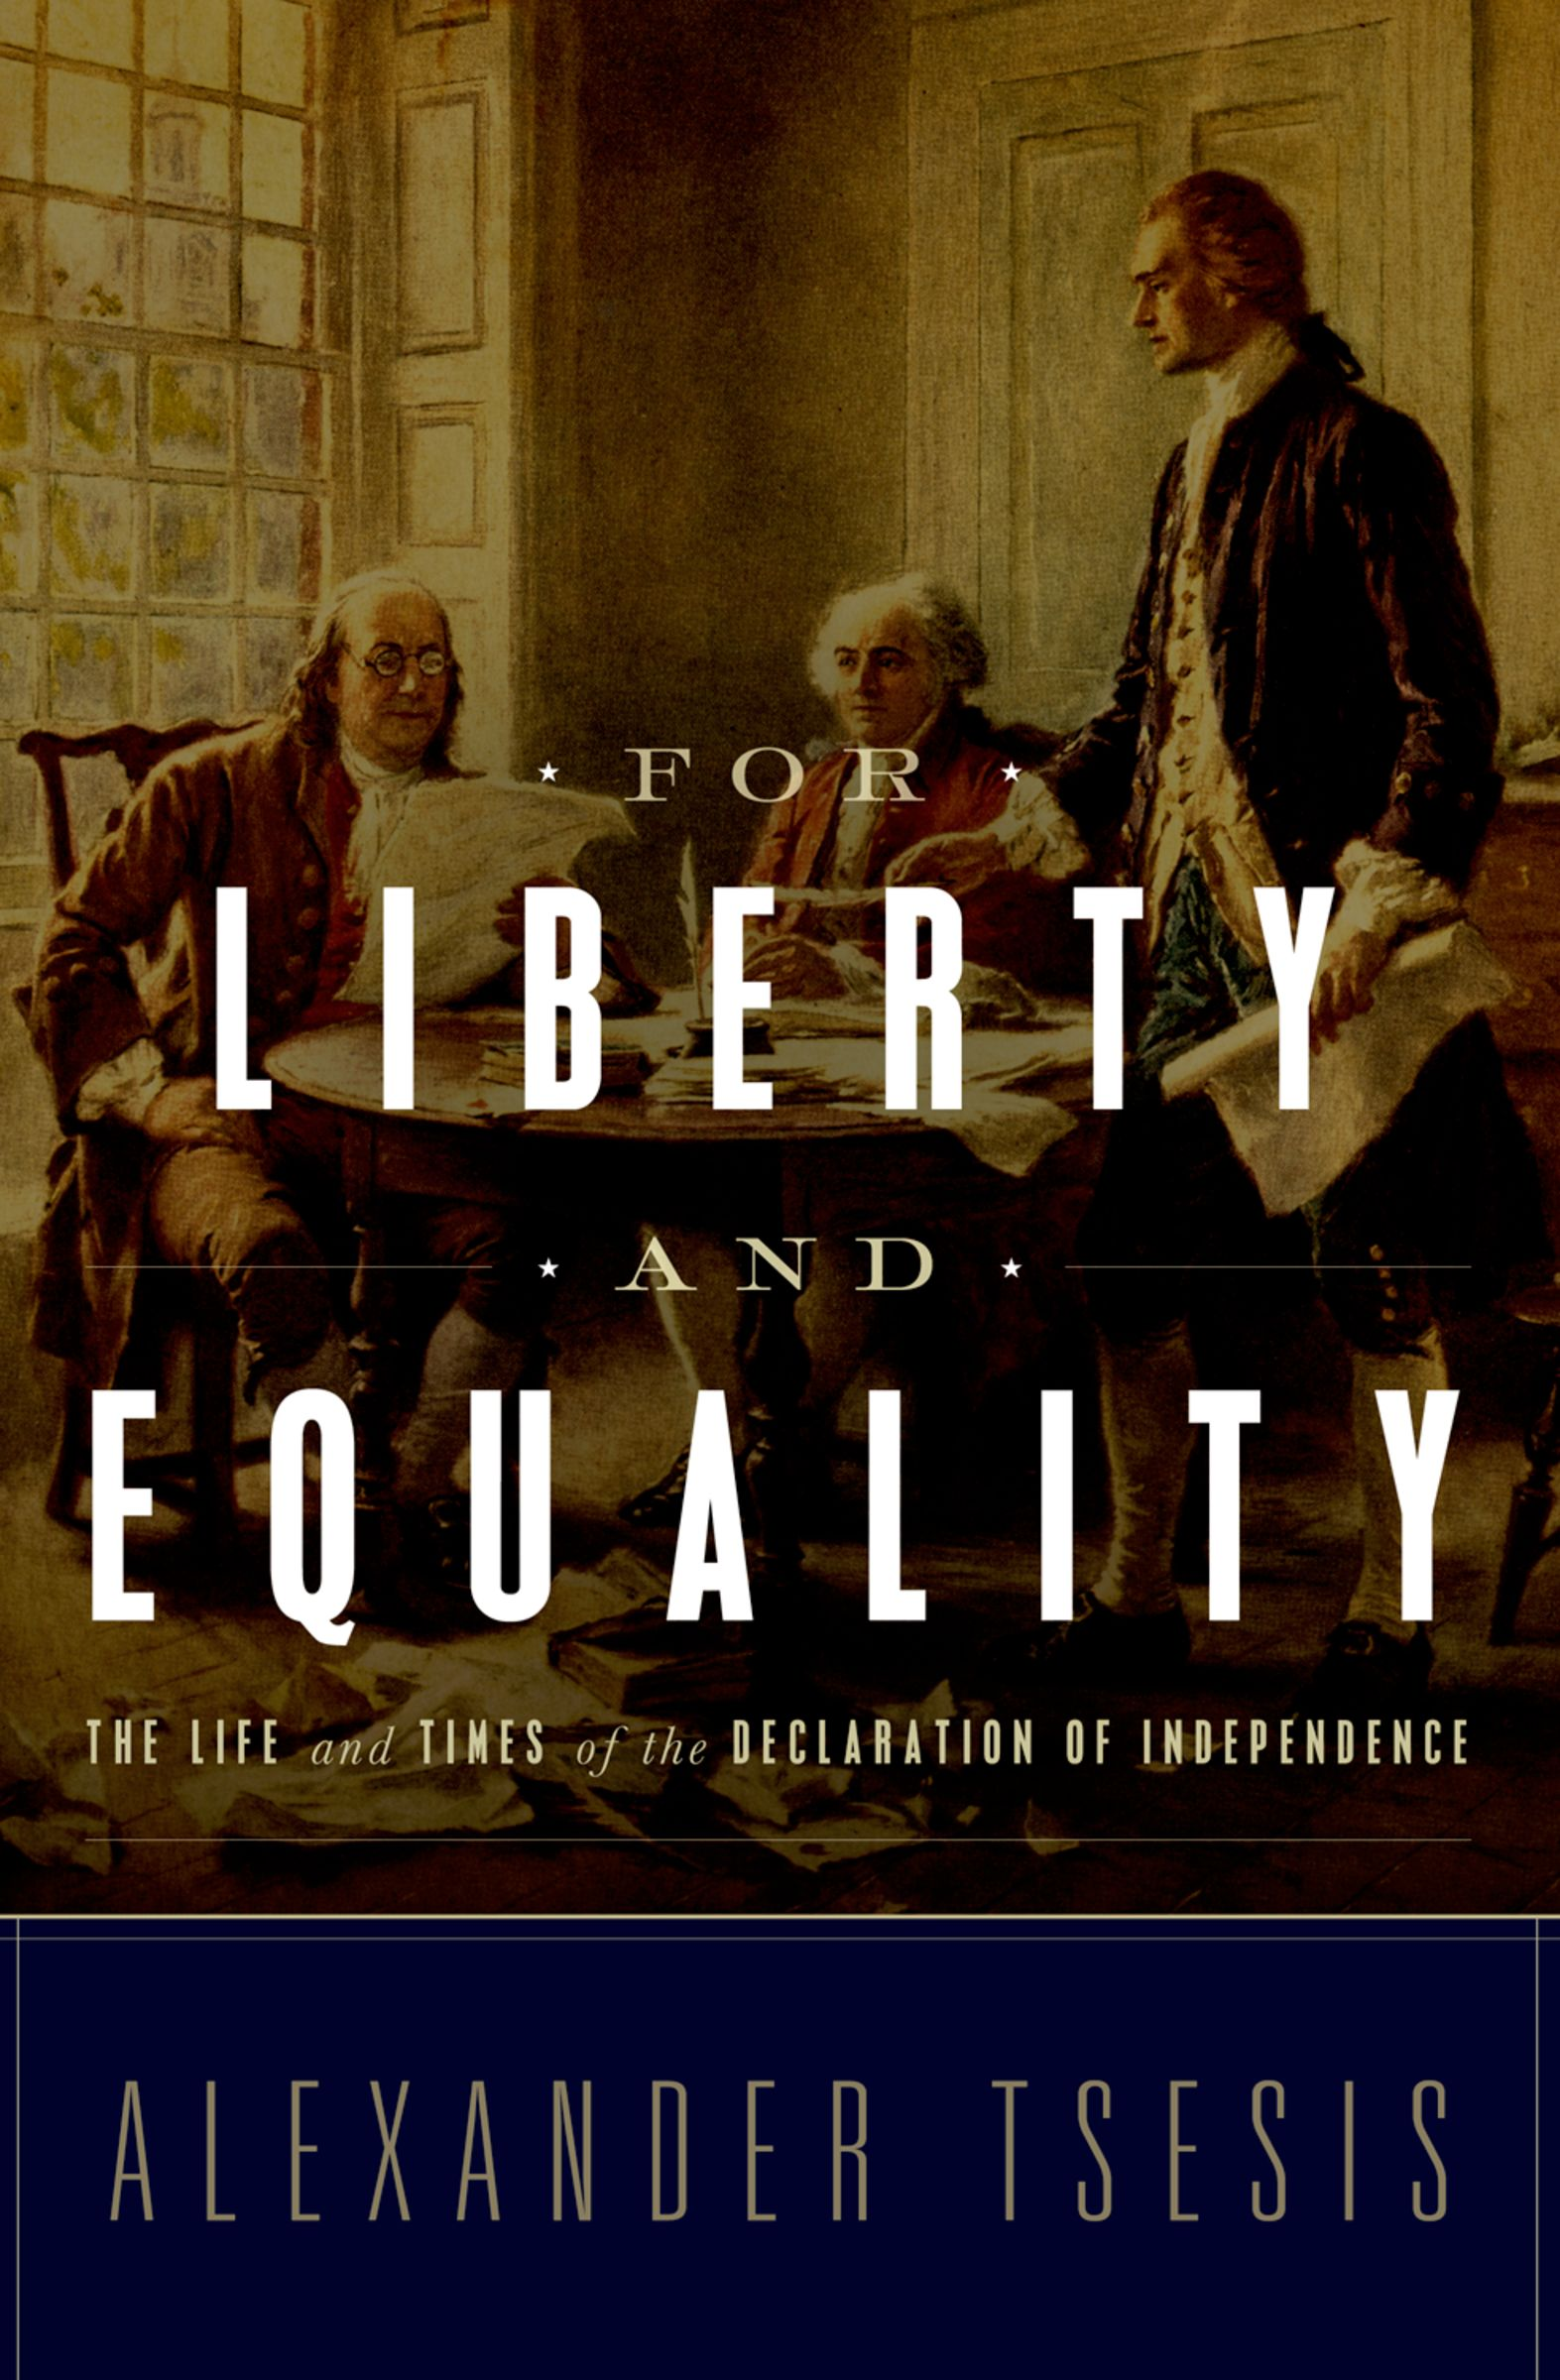 life liberty freedom and equality essay United states declaration of independence and  united states declaration of independence and people  that liberty means freedom, 2) that equality means.